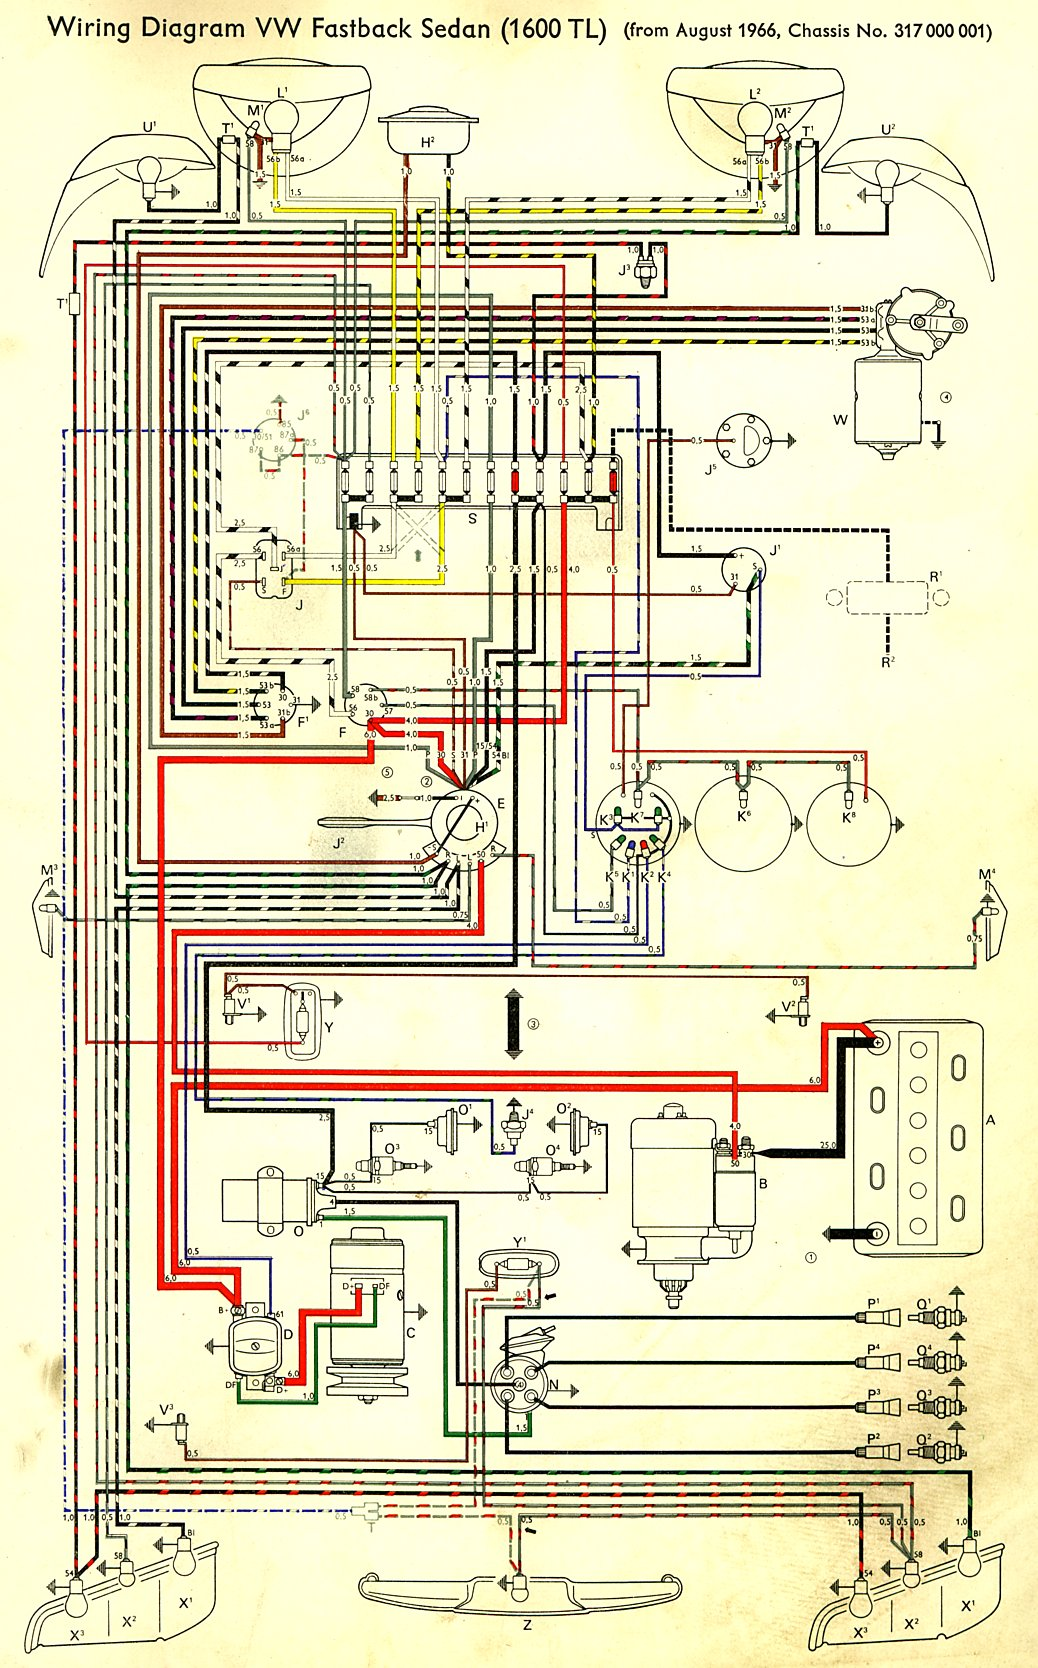 type3_1600TL_67 vw bus wiring diagram 1965 vw bus wiring diagram \u2022 wiring diagrams 1971 vw beetle wiring diagram at nearapp.co